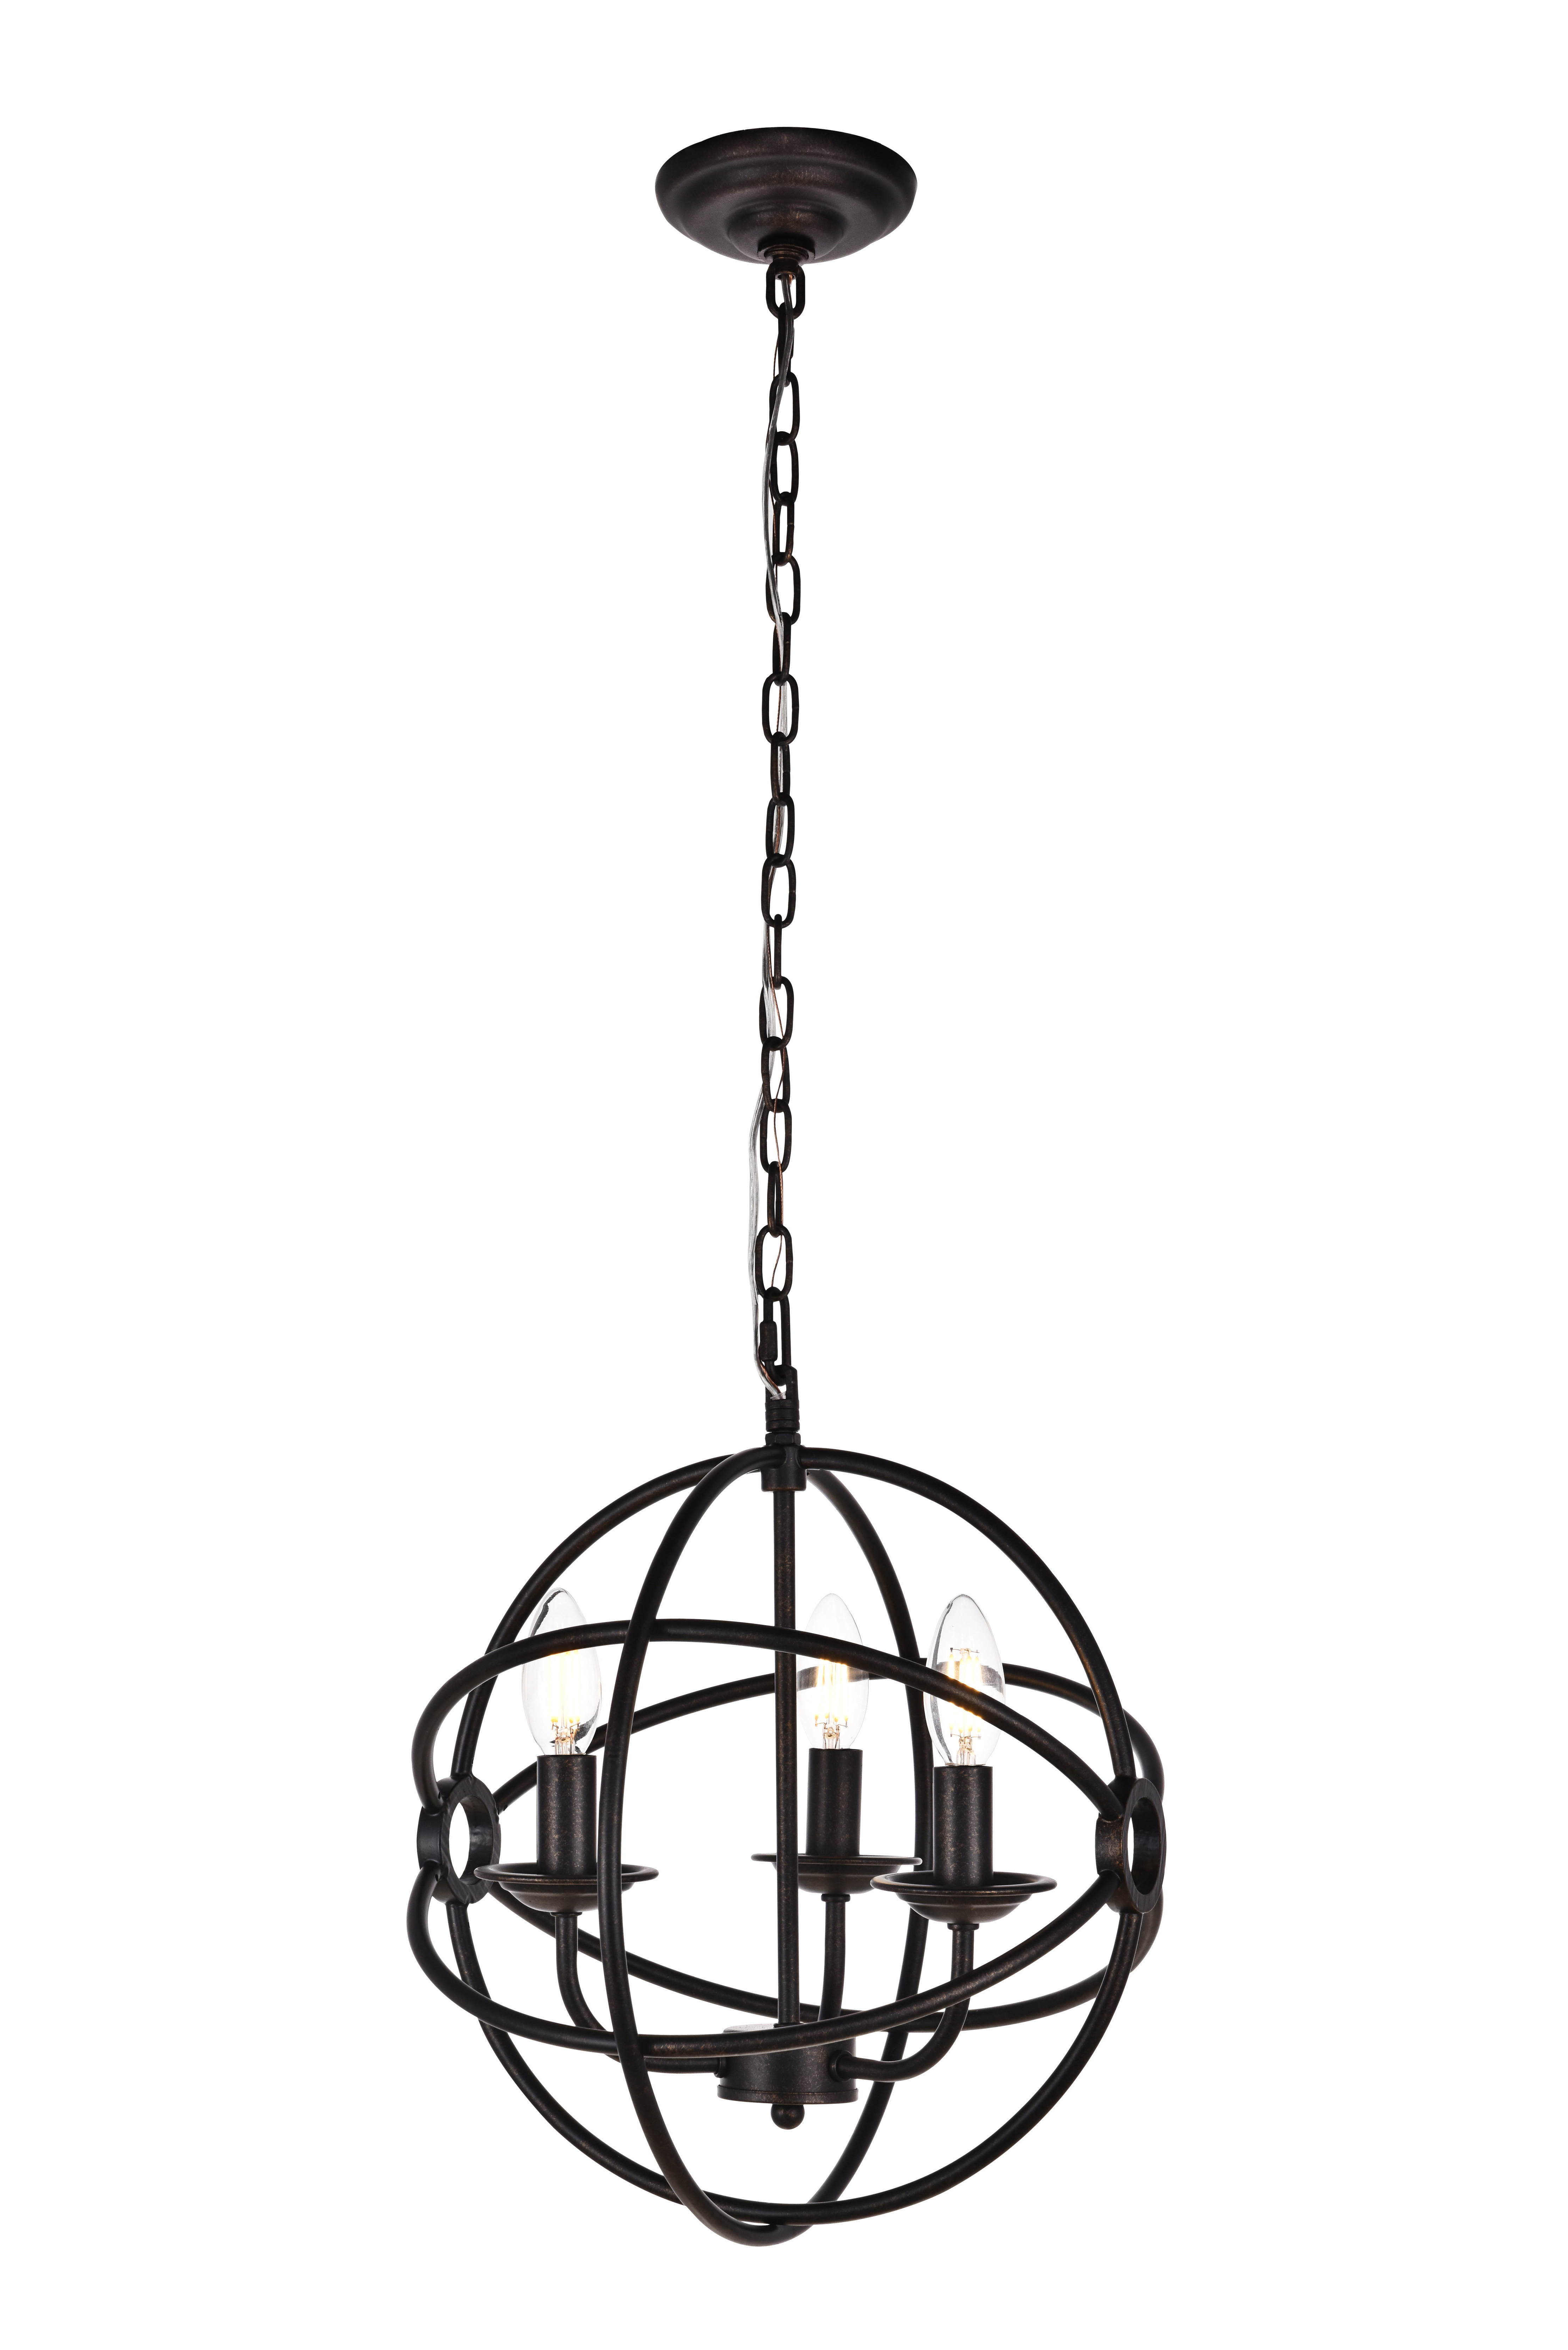 Best And Newest Shipststour 3 Light Globe Chandeliers With Shipststour 3 Light Globe Chandelier (View 5 of 20)